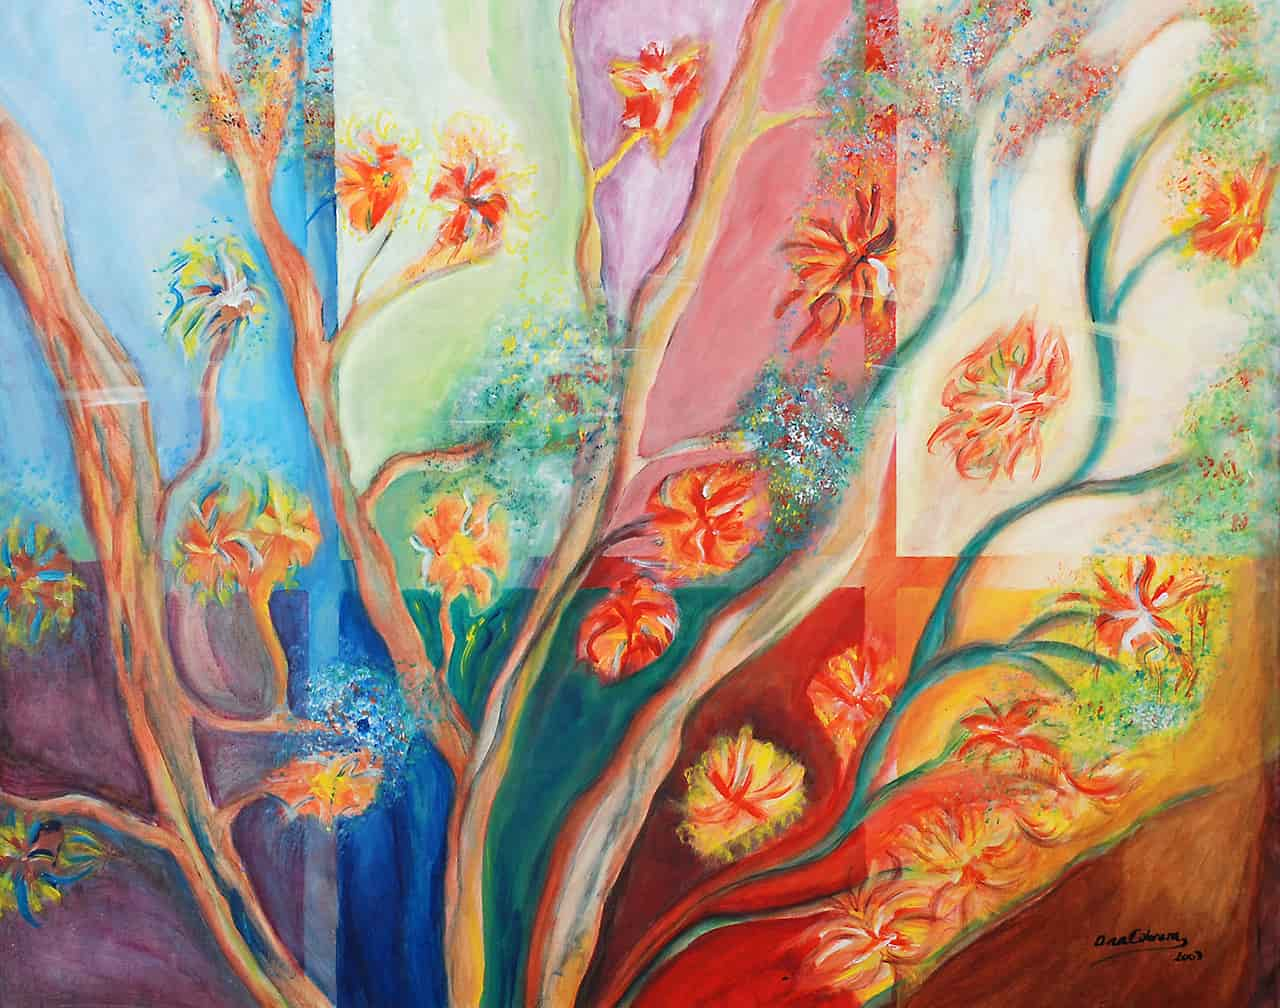 Painting of a colorful window with nice trees and flowers